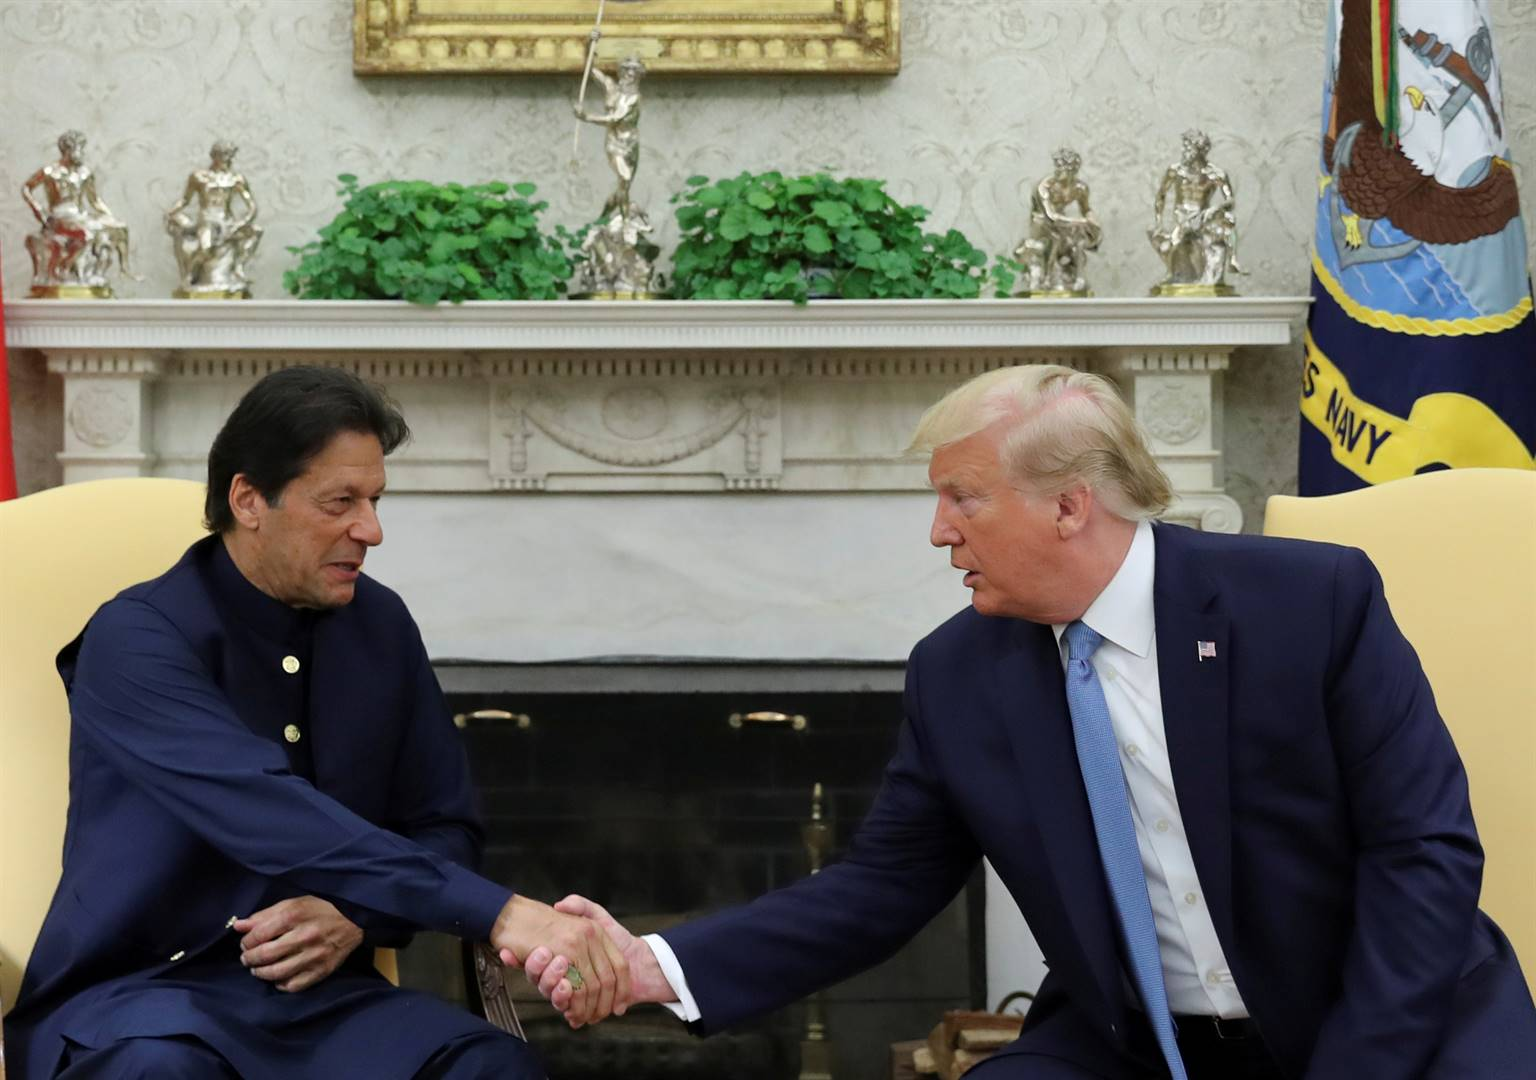 President Donald Trump and his Pakistan counterpart Imran Khan, at a meeting at the White House.